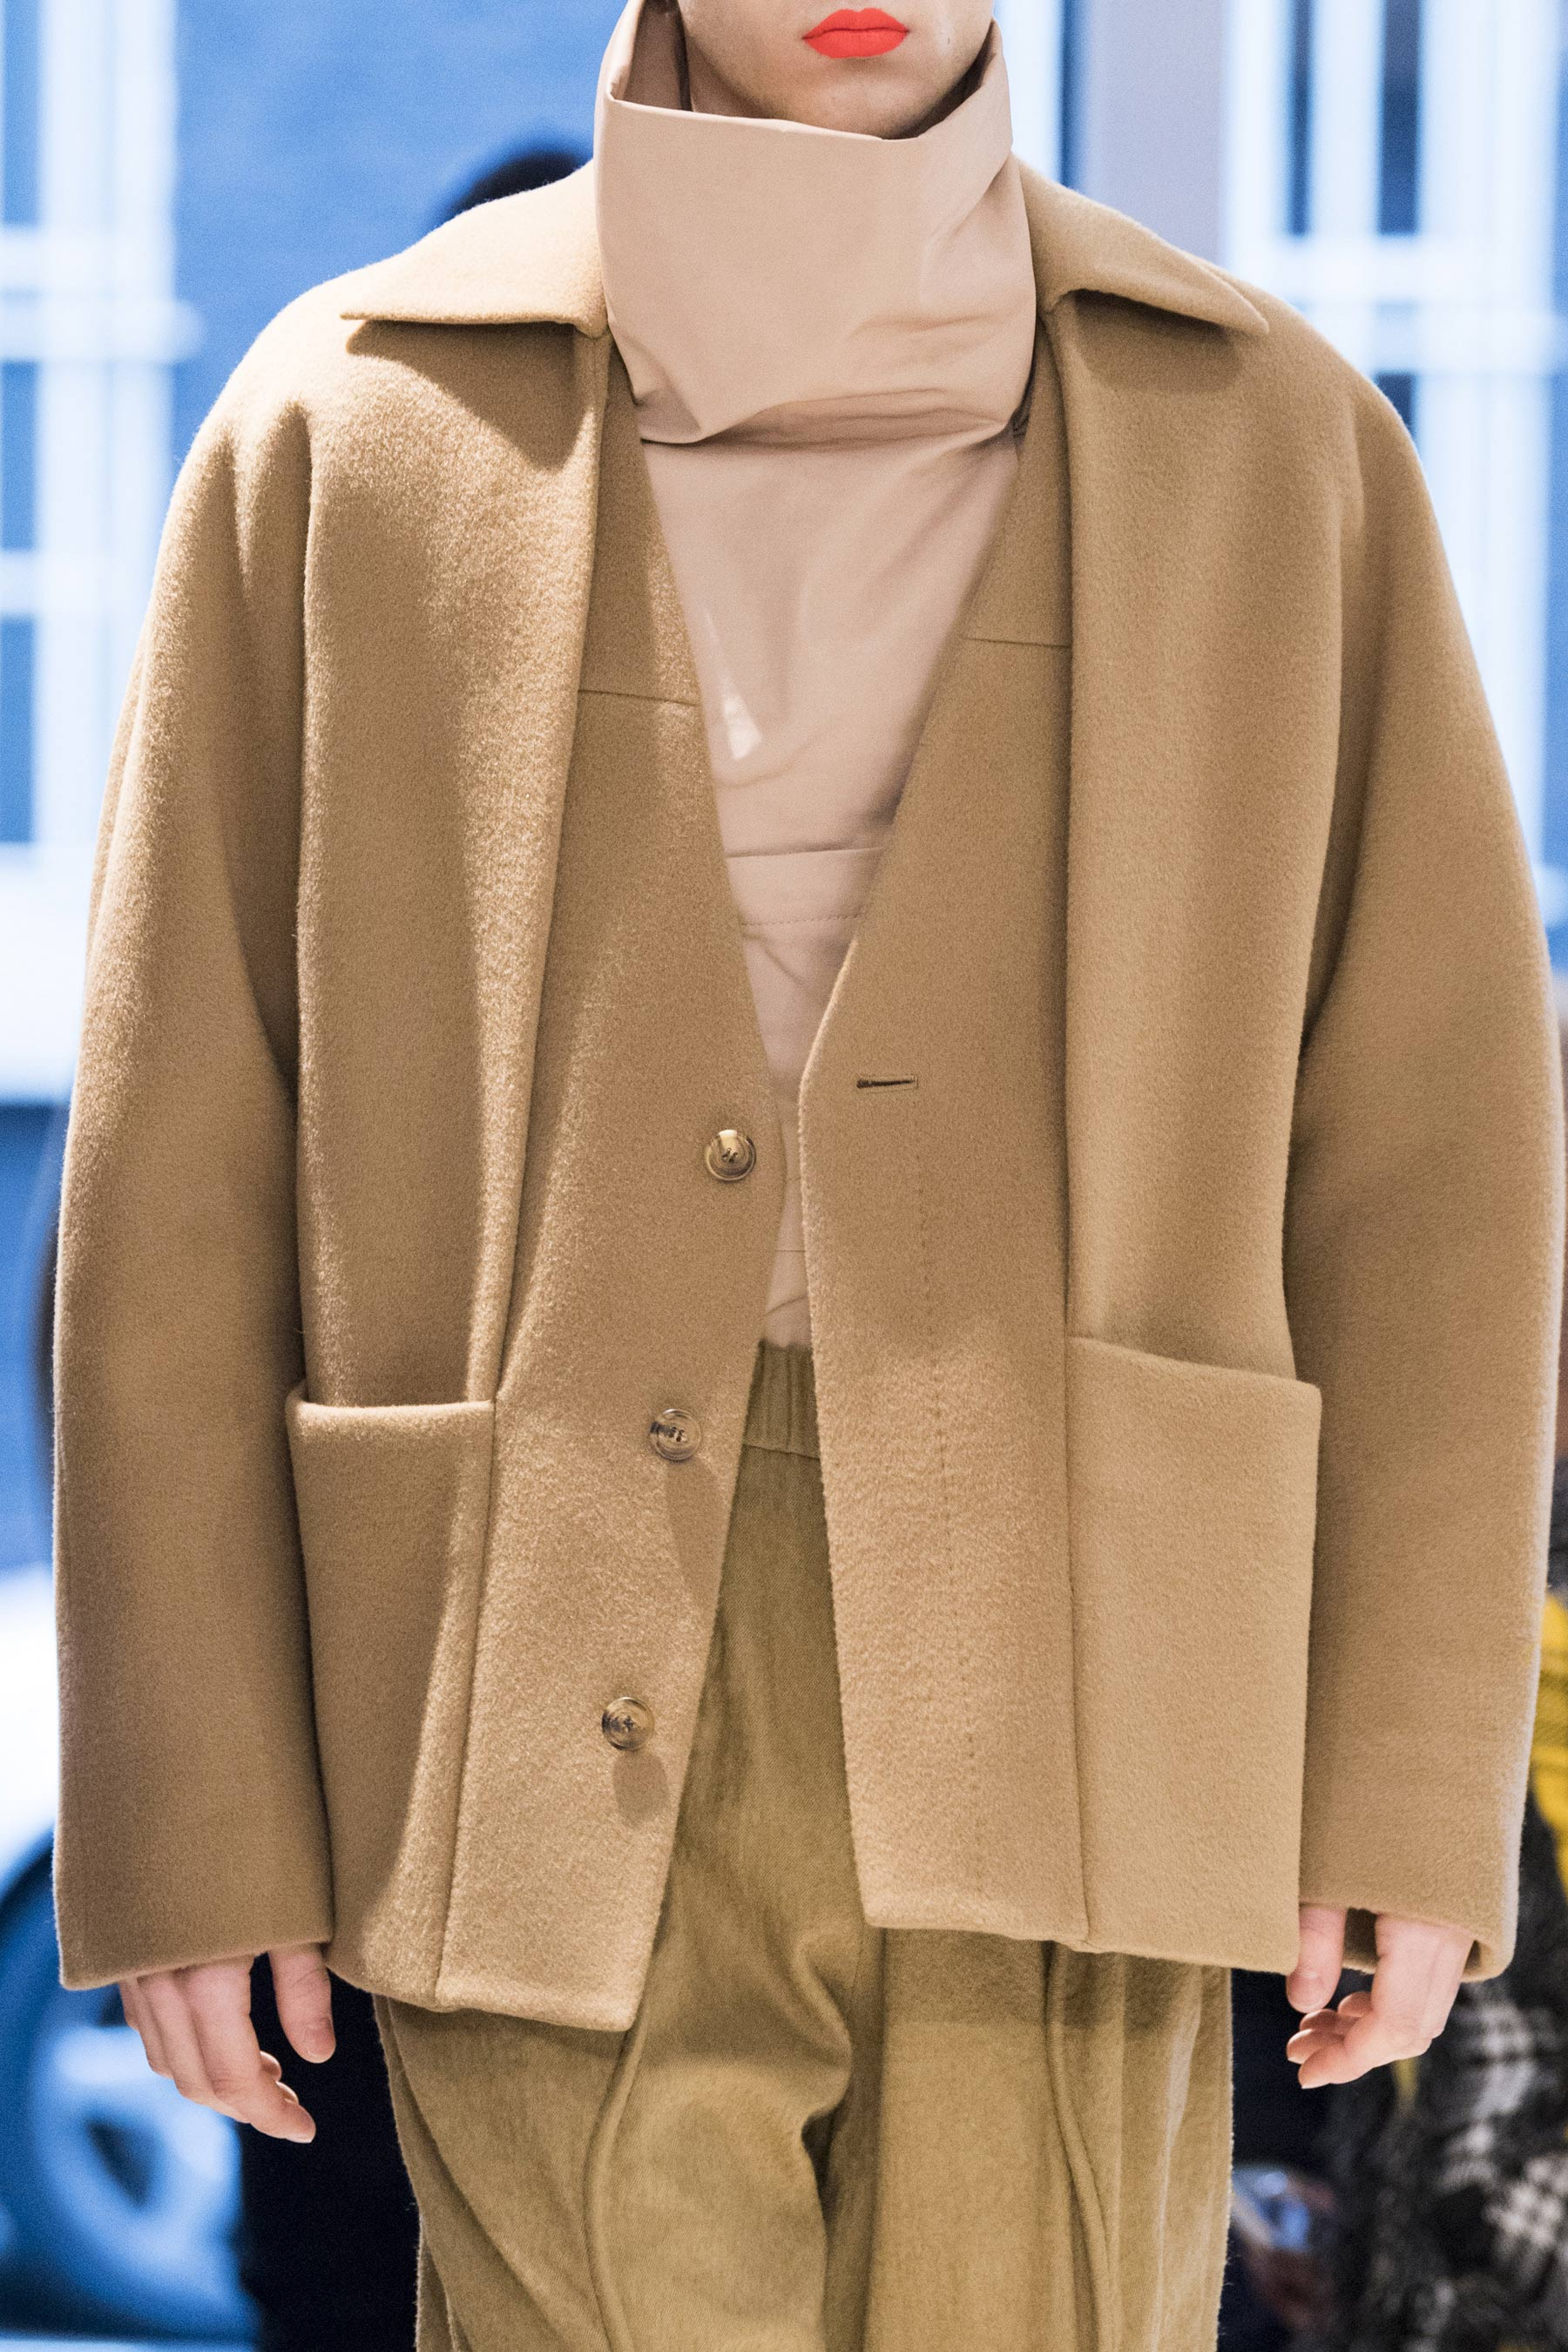 Detail of a look from Chalayan Men's Fall/Winter 2019 collection shown at London Fashion Week: Men's.